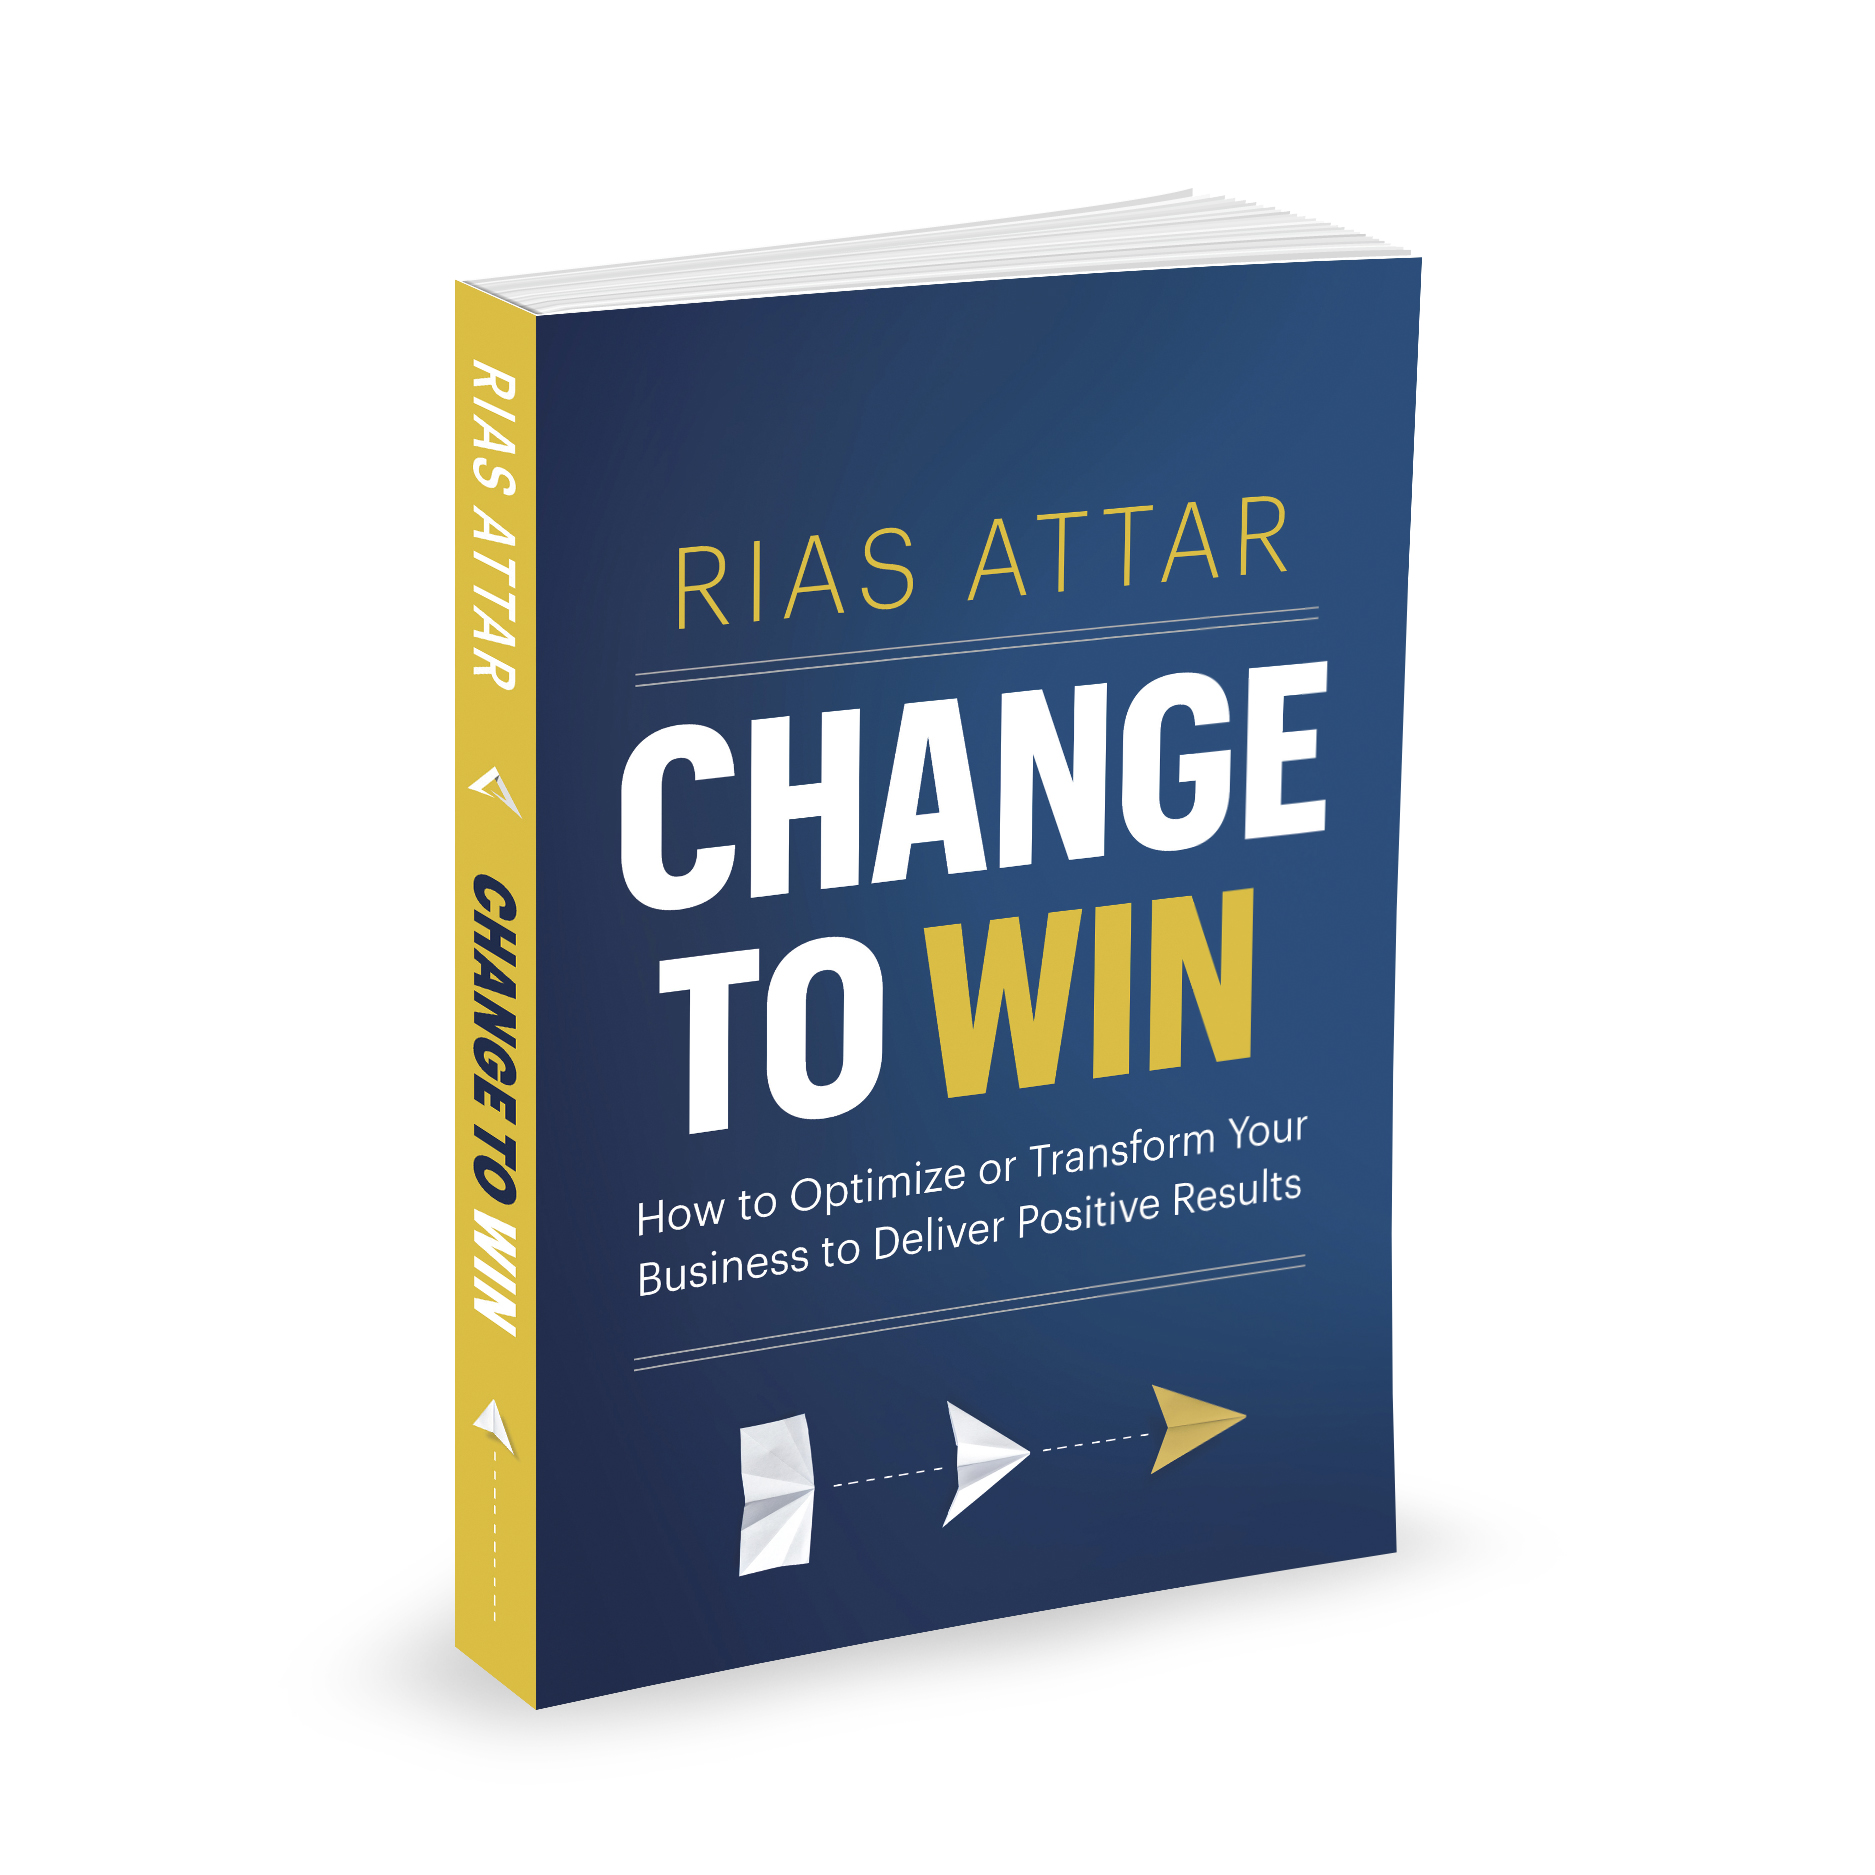 New Book Helps Readers Optimize or Transform Their Businesses to Deliver Positive Results